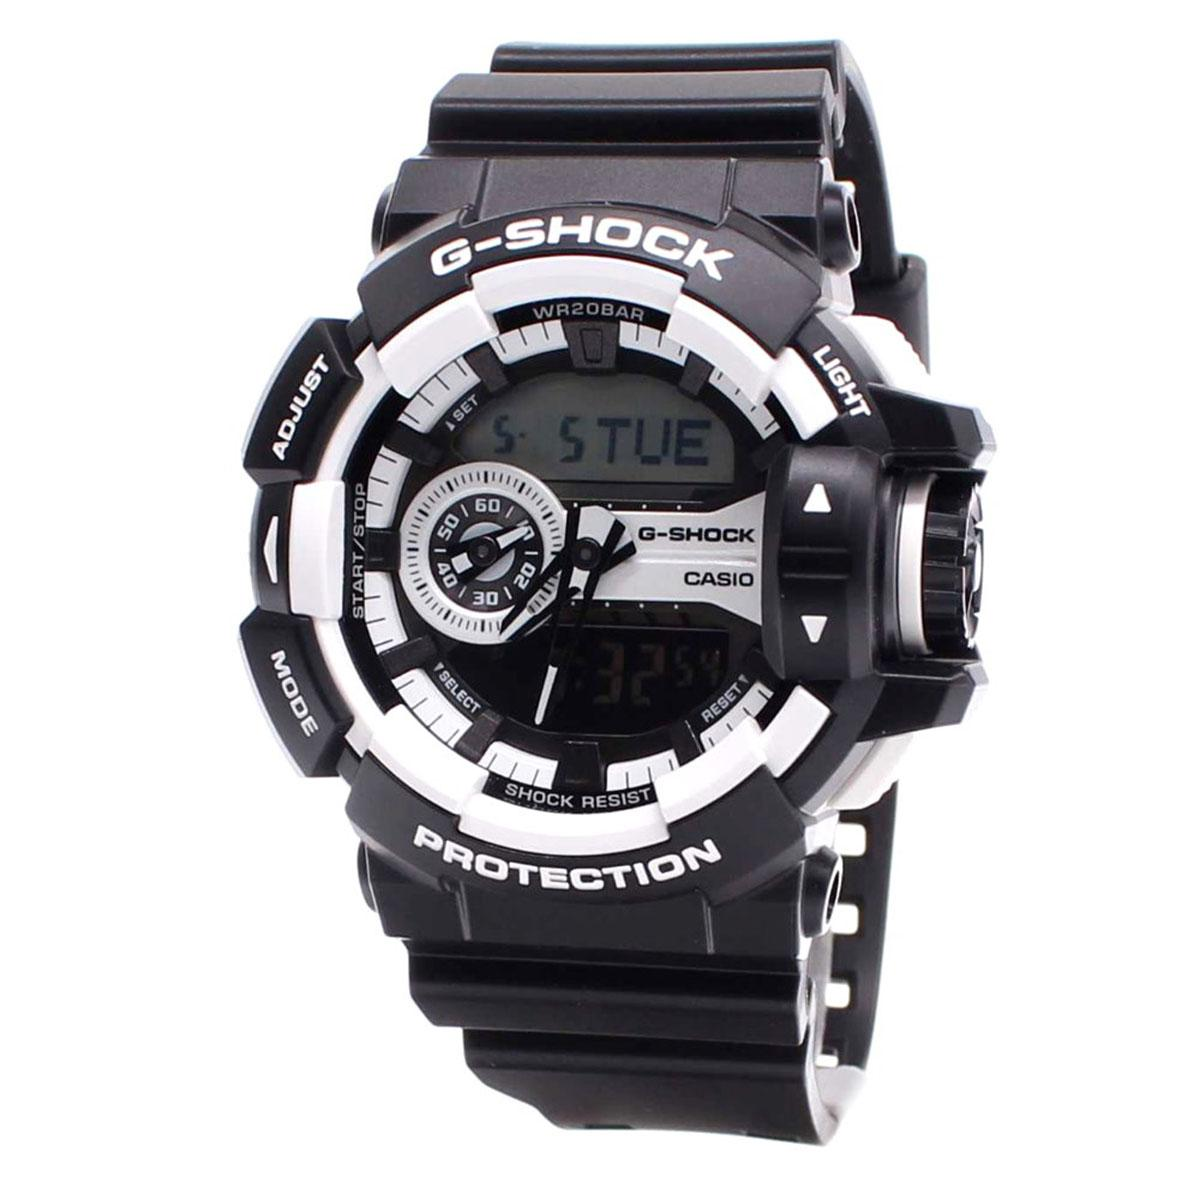 Discount Casio Watch G Shock Black Resin Case Resin Strap Mens Ga 400 1A Casio G Shock On Singapore